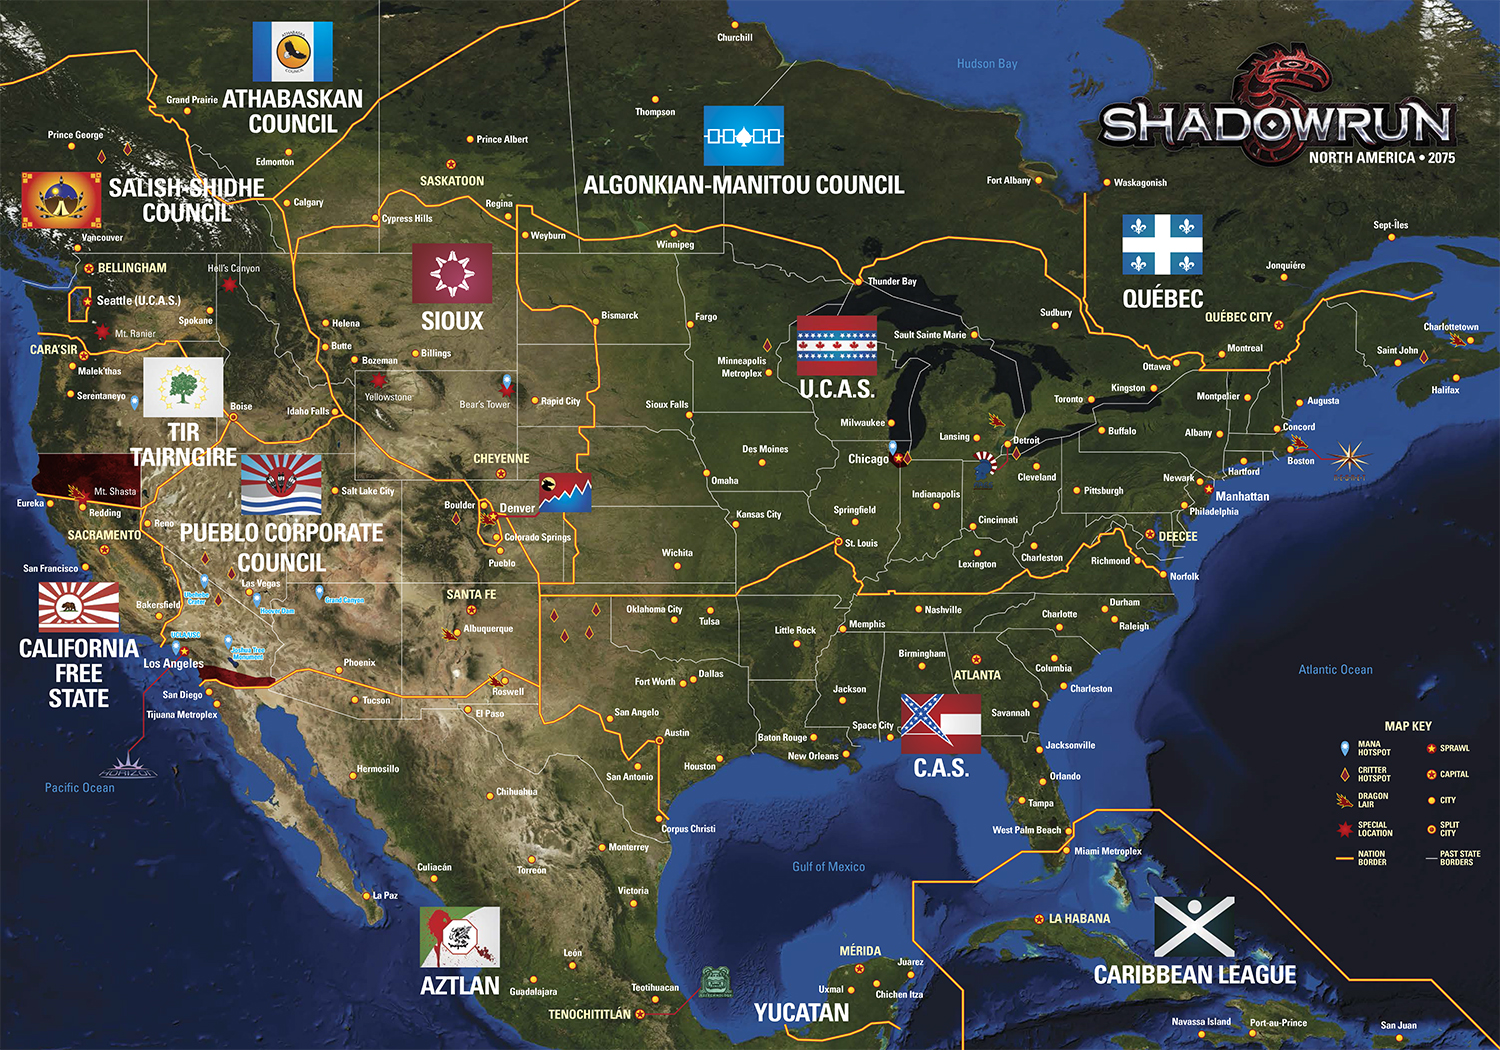 All Shadowrun maps (custom Google Maps, images, )   Let's catch